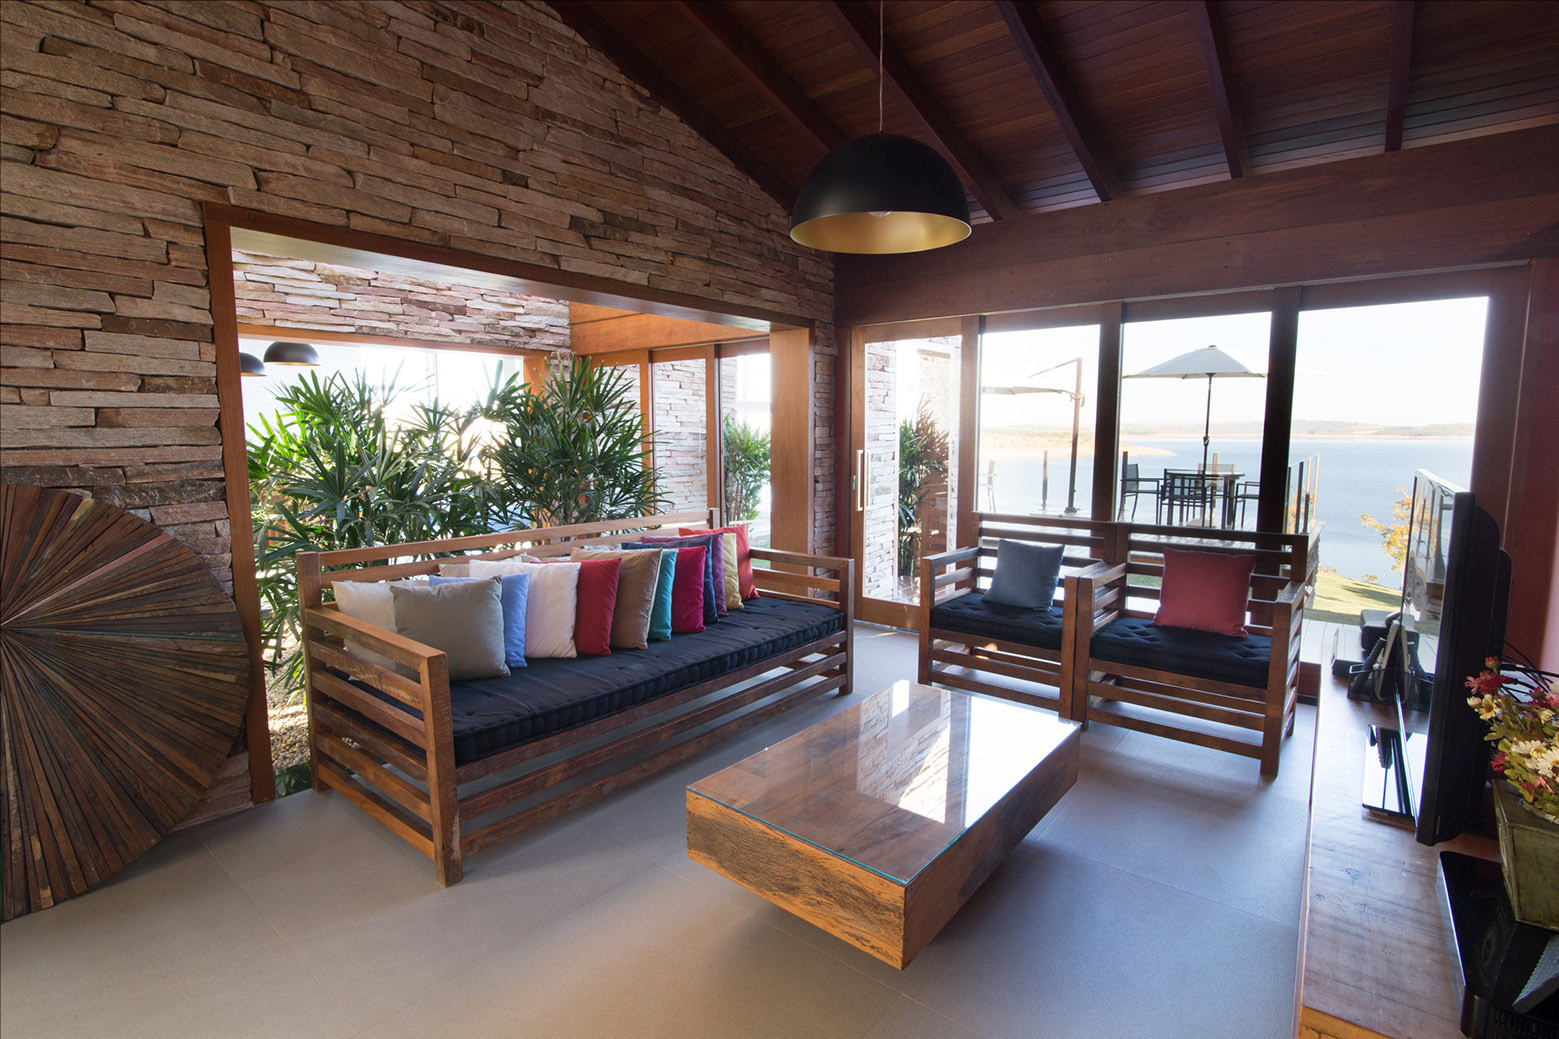 Gallery of canyons do lago house mutabile arquitetura 7 for Carlos house lagos